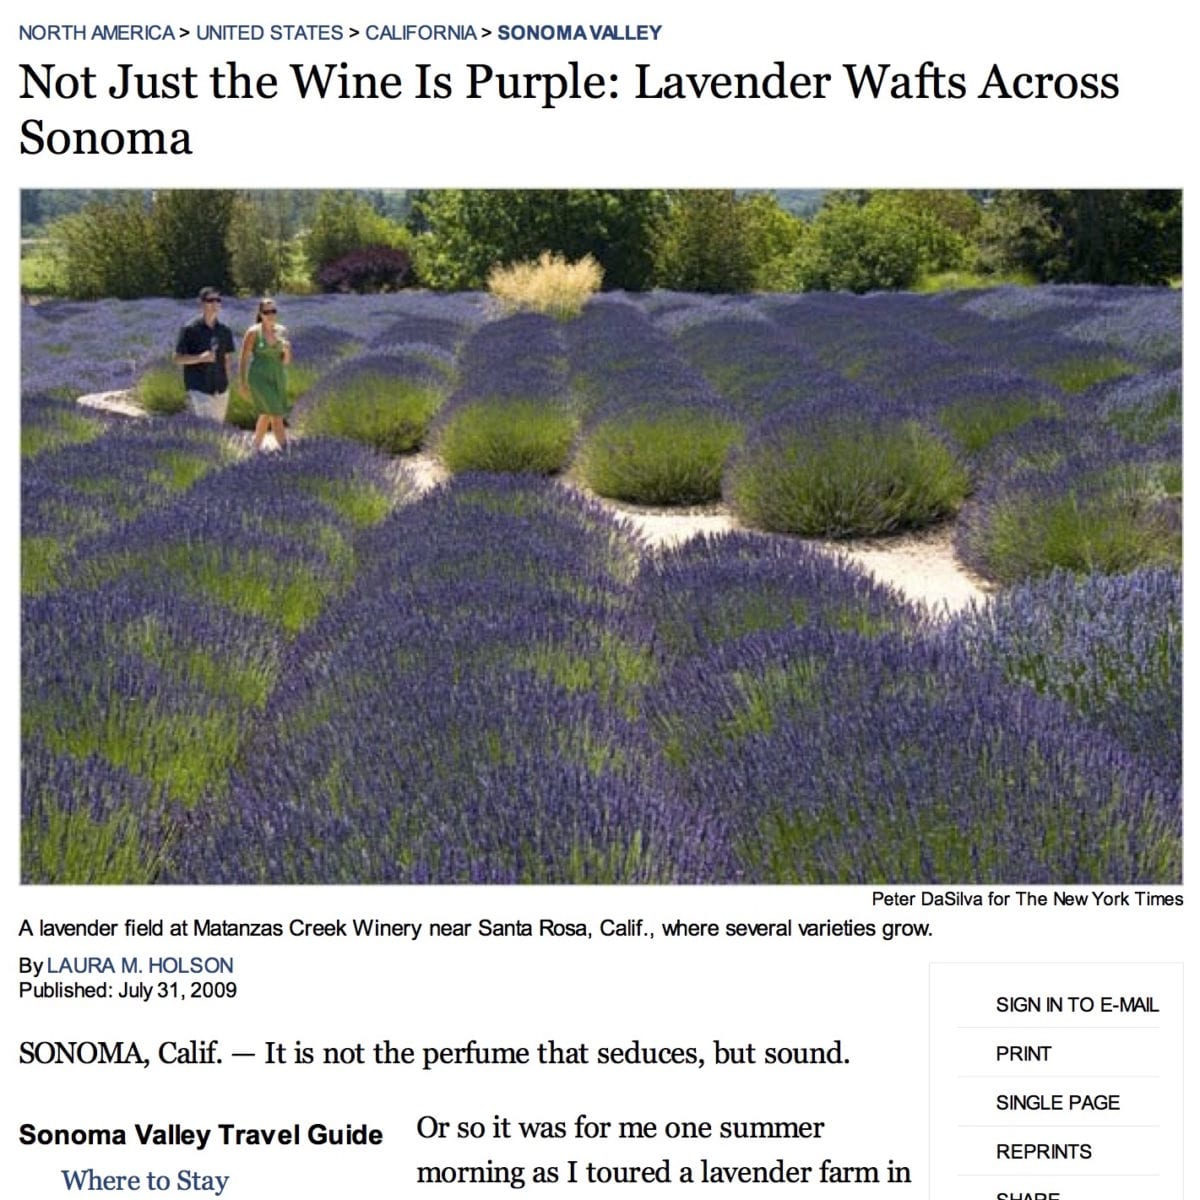 New York Times article. Headline Text: Not Just the Wine is Purple; Lavender Wafts Across Sonoma.